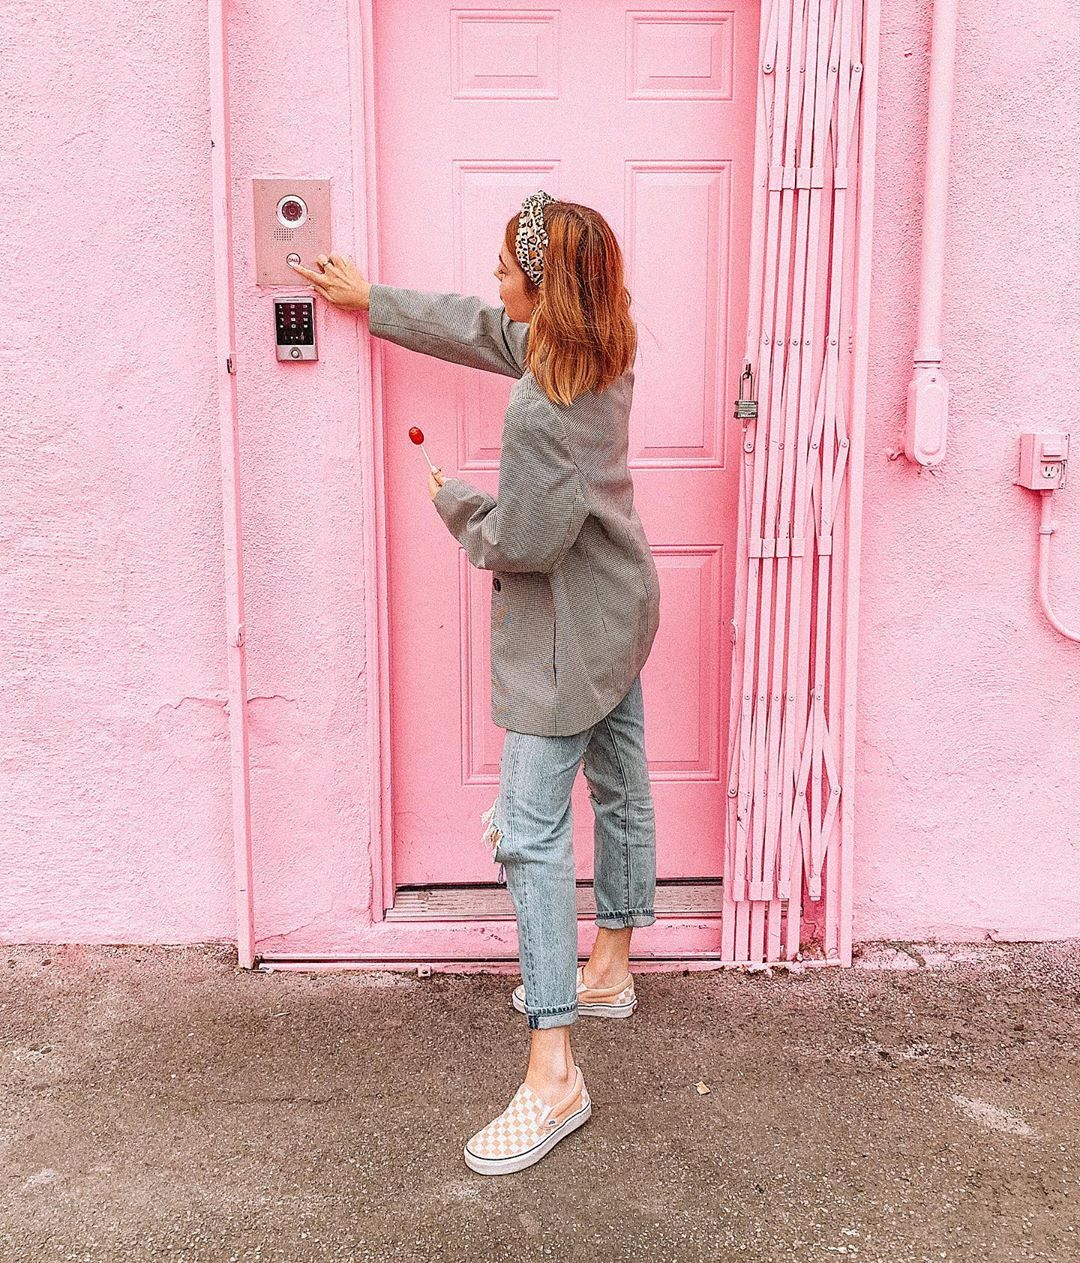 Jaci Marie On Instagram Ringing The Doorbell To Ask If I Can Move In Did You Guys Know Today Is National P National Pink Day Pink Day Today Is National